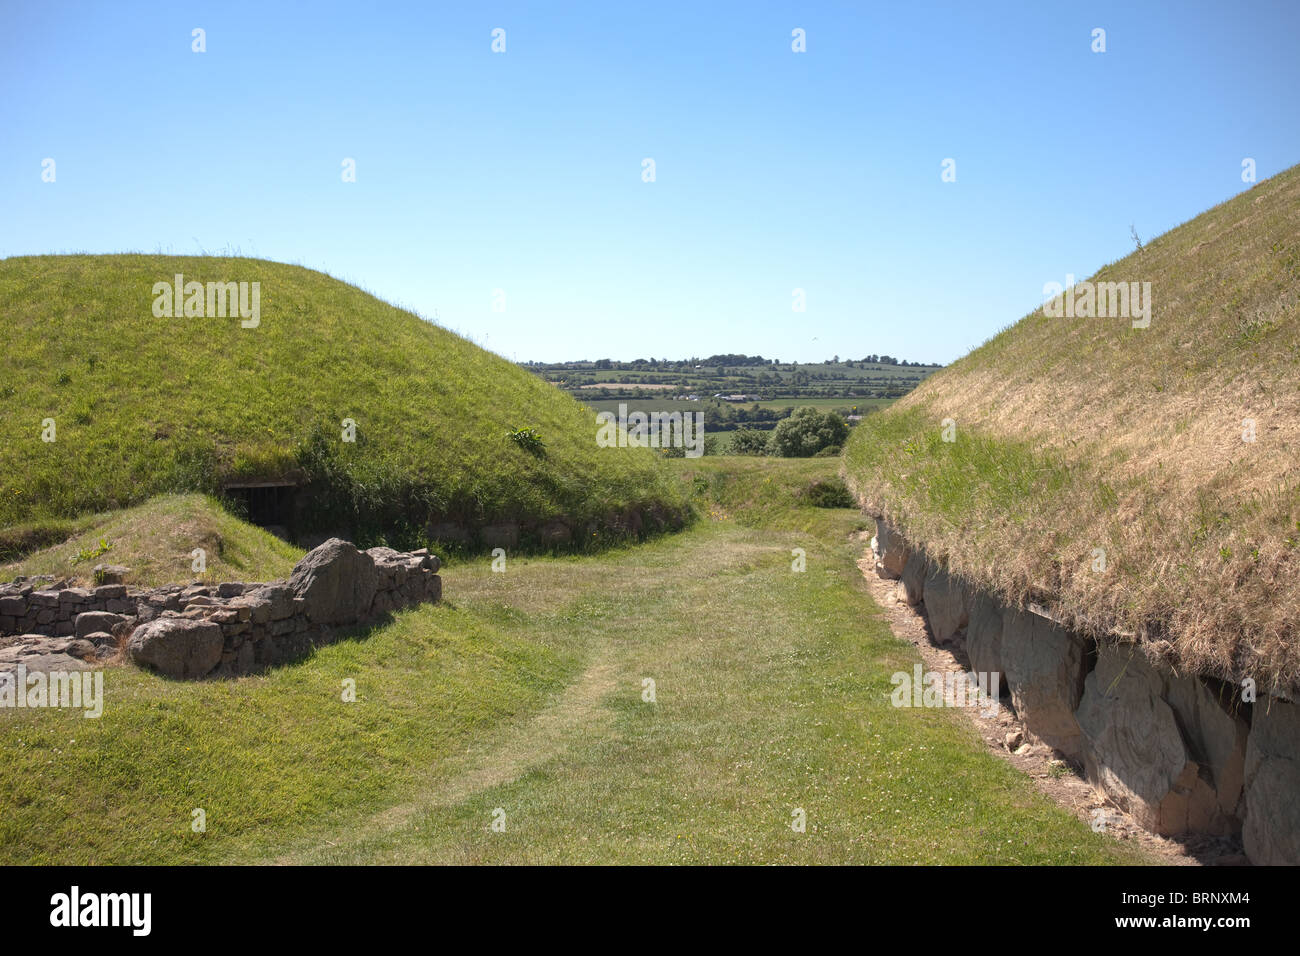 view of main mound, Knowth neolithic passage grave, Boyne Valley, Ireland Stock Photo